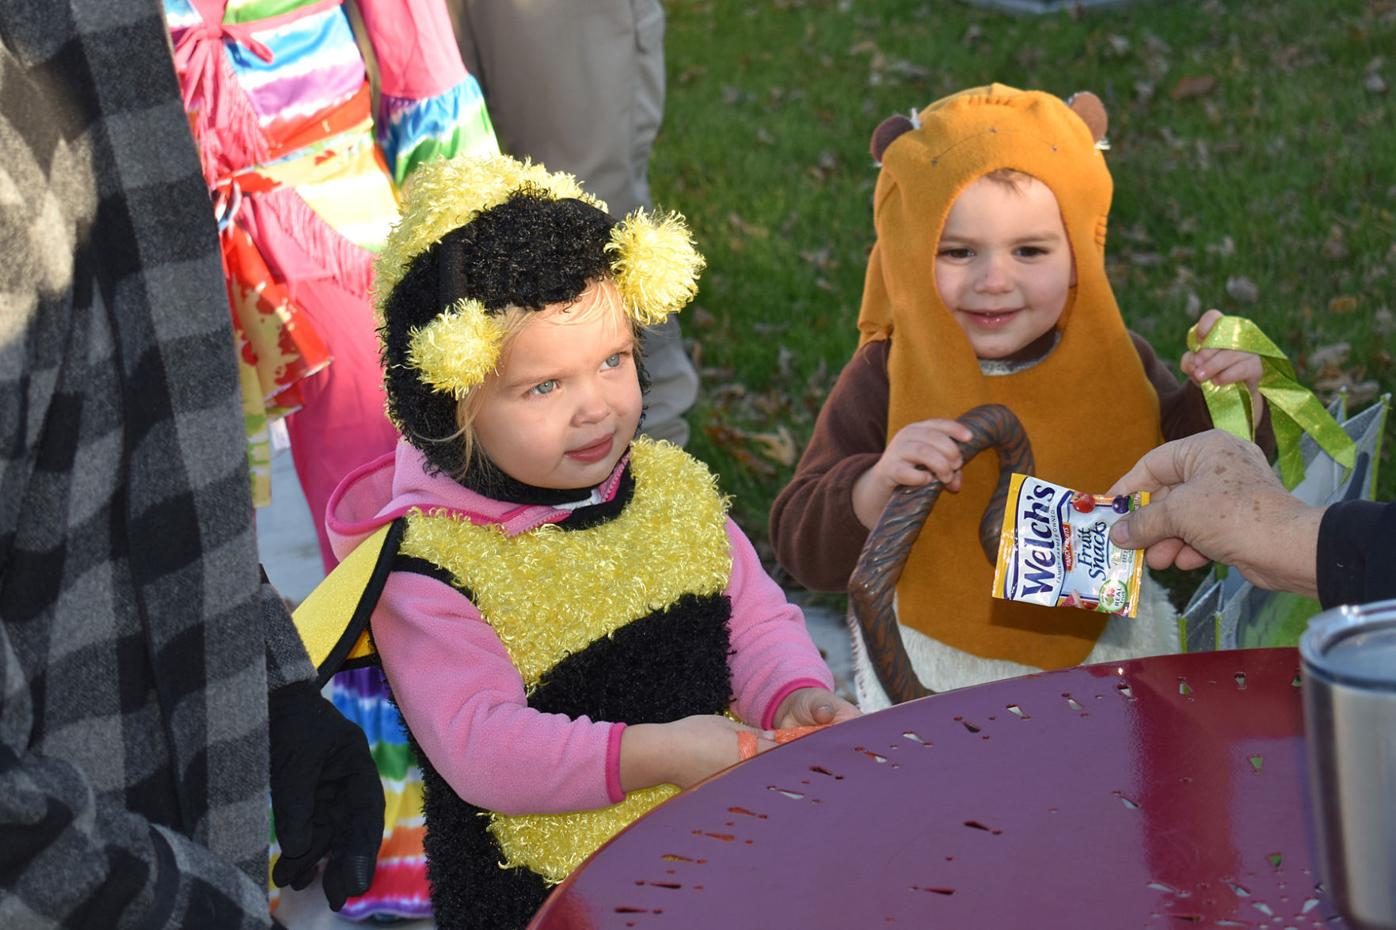 Pandemic Halloween - Handing Out Candy